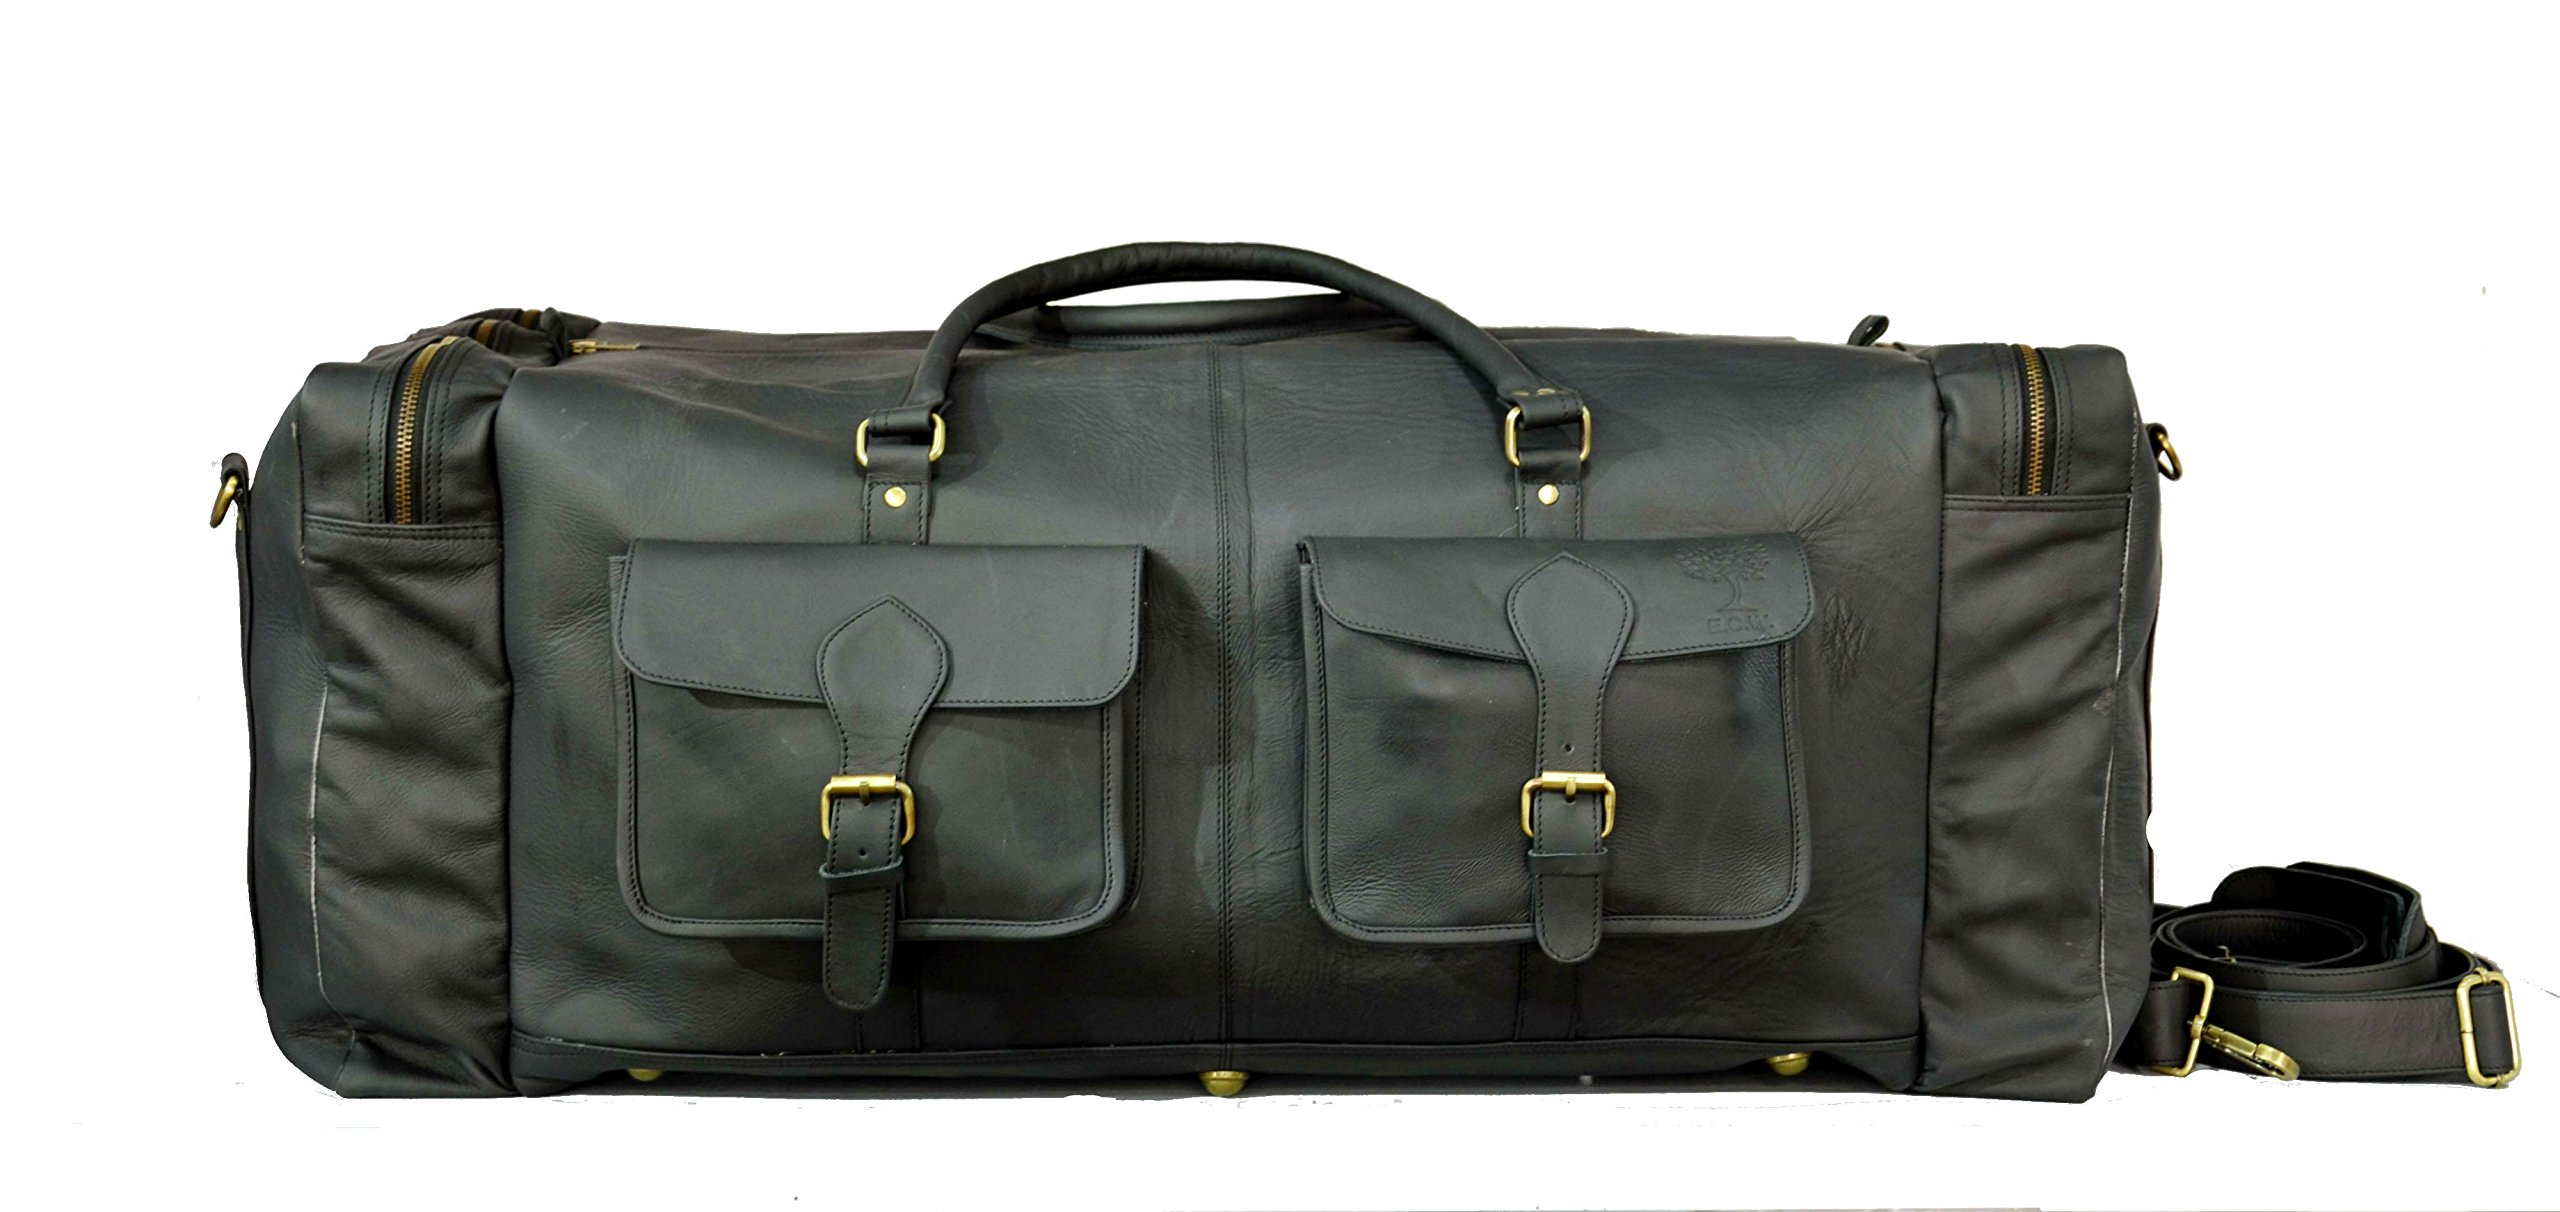 28 Inch Vintage Leather Duffel Travel Gym Sports Overnight Weekend Luggage Tote Duffle Bags For Men (BLACK)